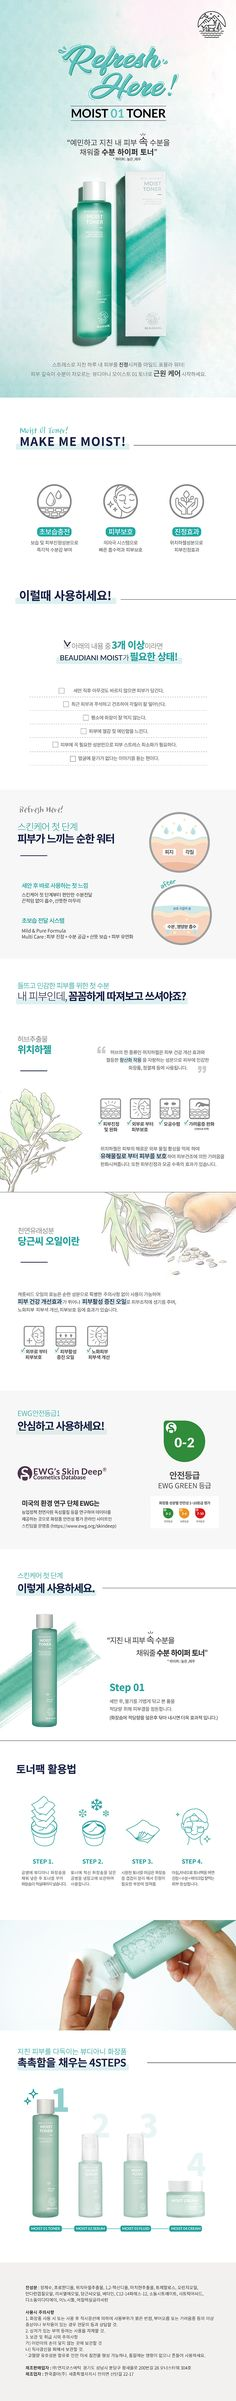 [BEAUDIANI뷰디아니] 모이스트 01 토너 260ml Cosmetic Web, Cosmetic Design, Landing Page Inspiration, Web Design Inspiration, Ad Design, Layout Design, Diy Lotion, Event Banner, Presentation Layout